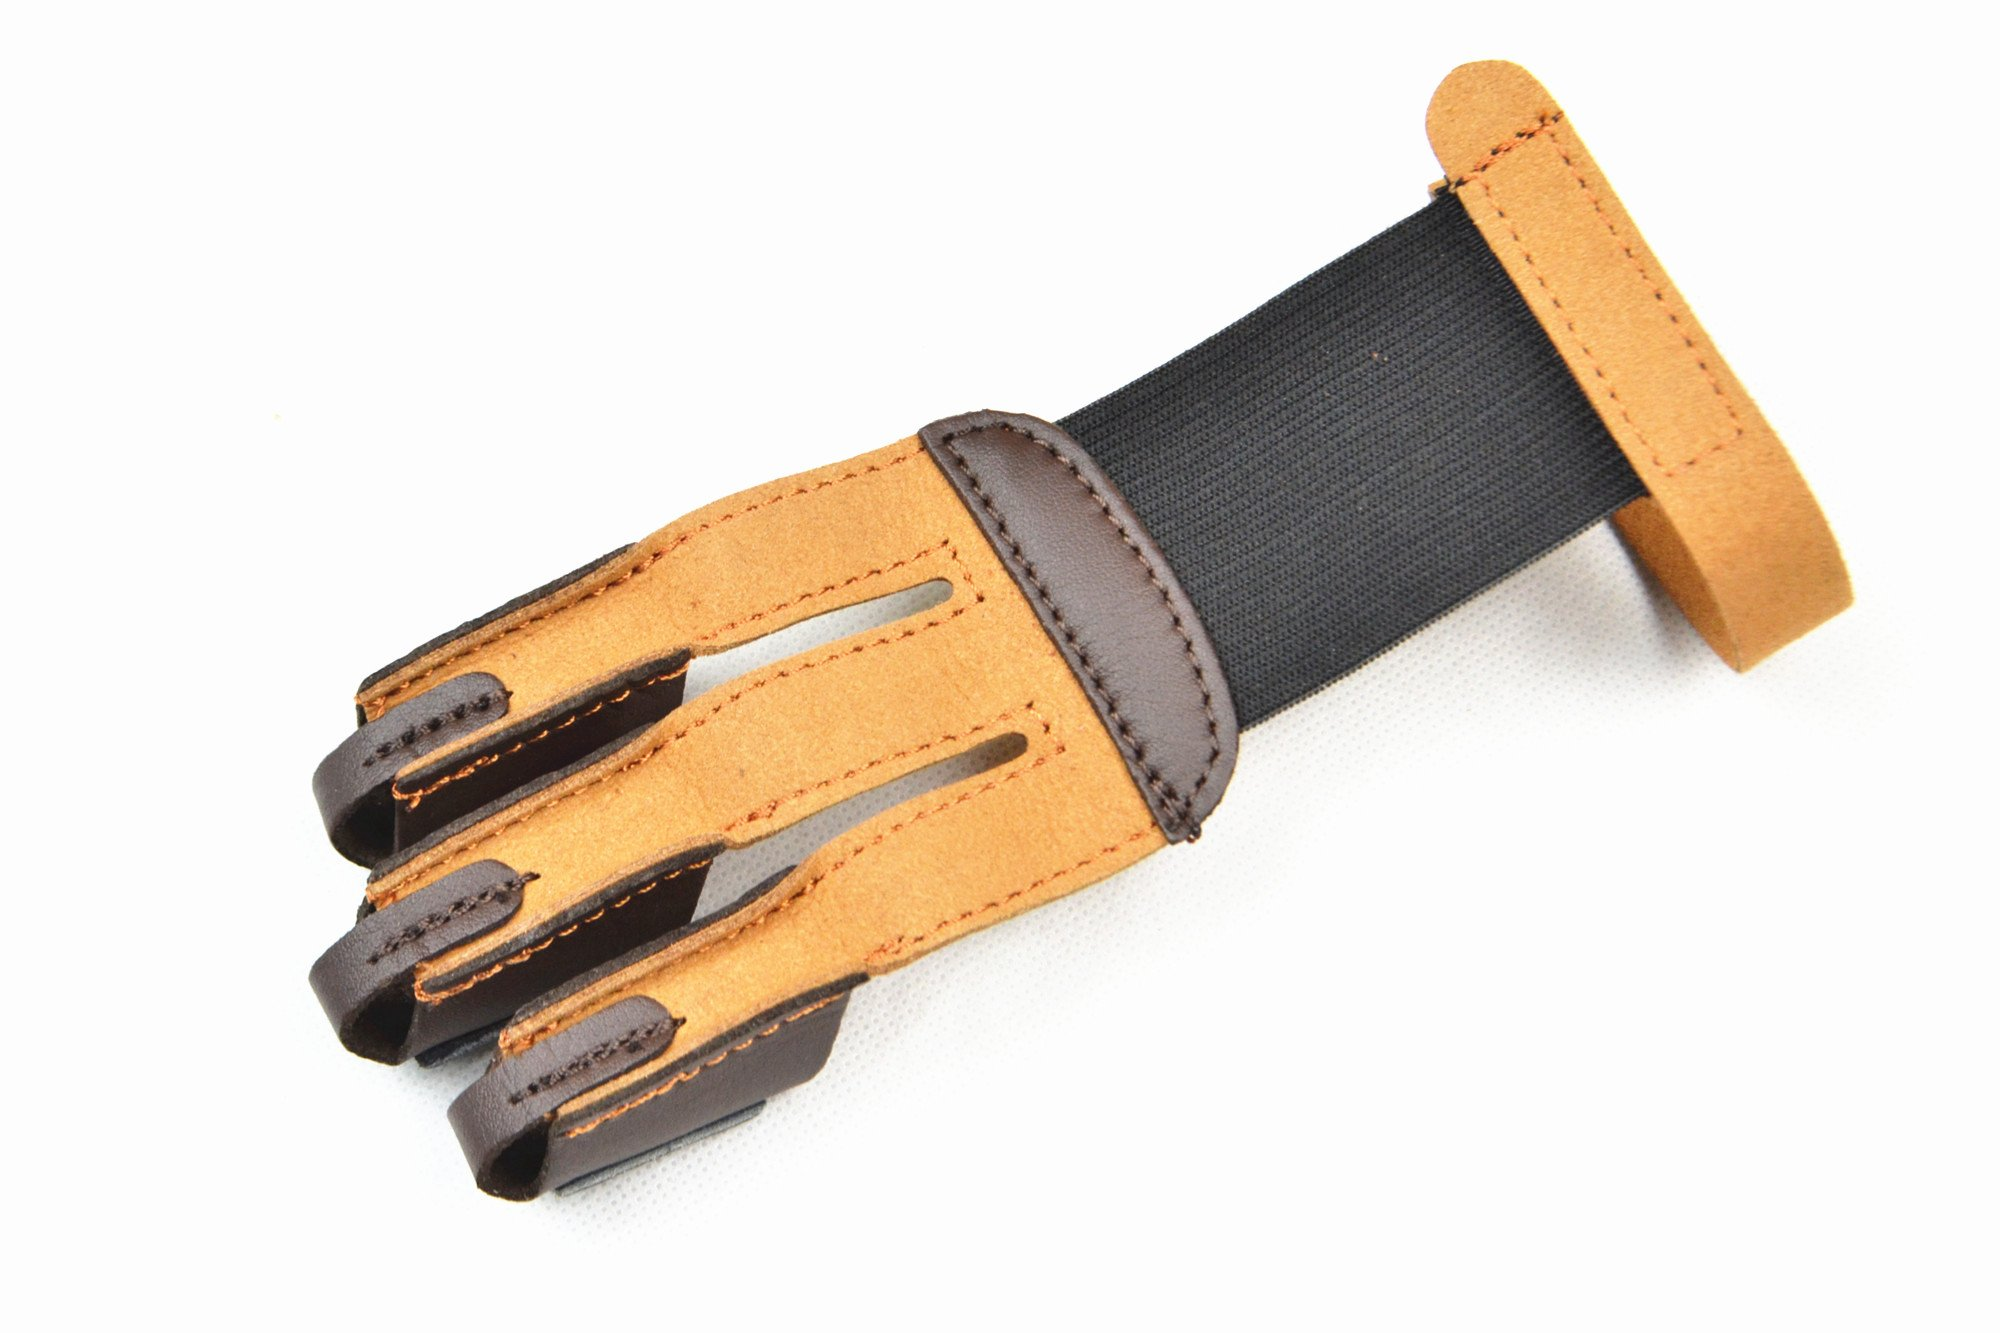 3 Finger Bow arrow broadheads Archery Hunting Shooting Glove Leather Finger Tip Protector Finger Guard Pull Archery